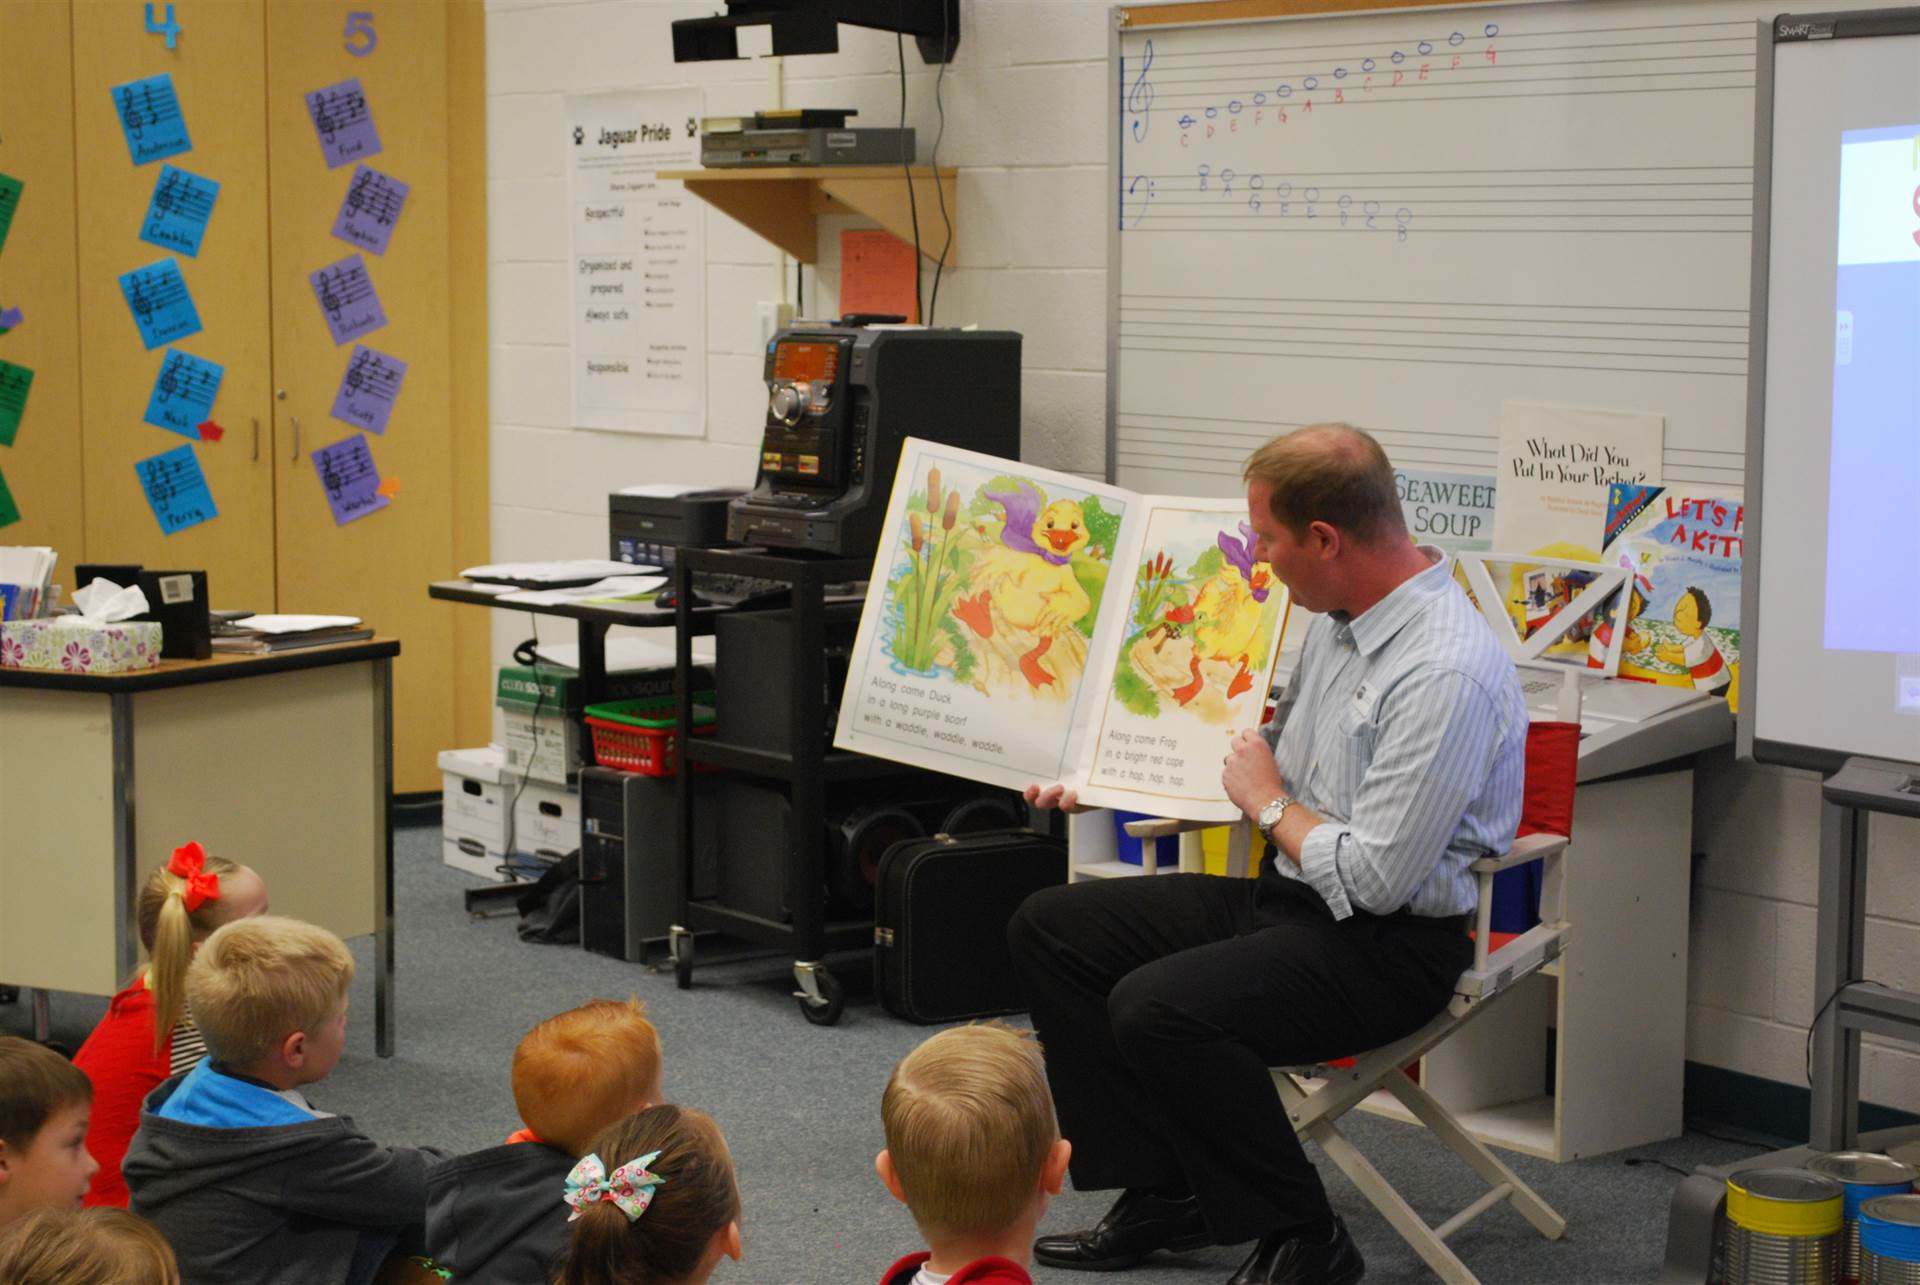 Music teacher reading to students.